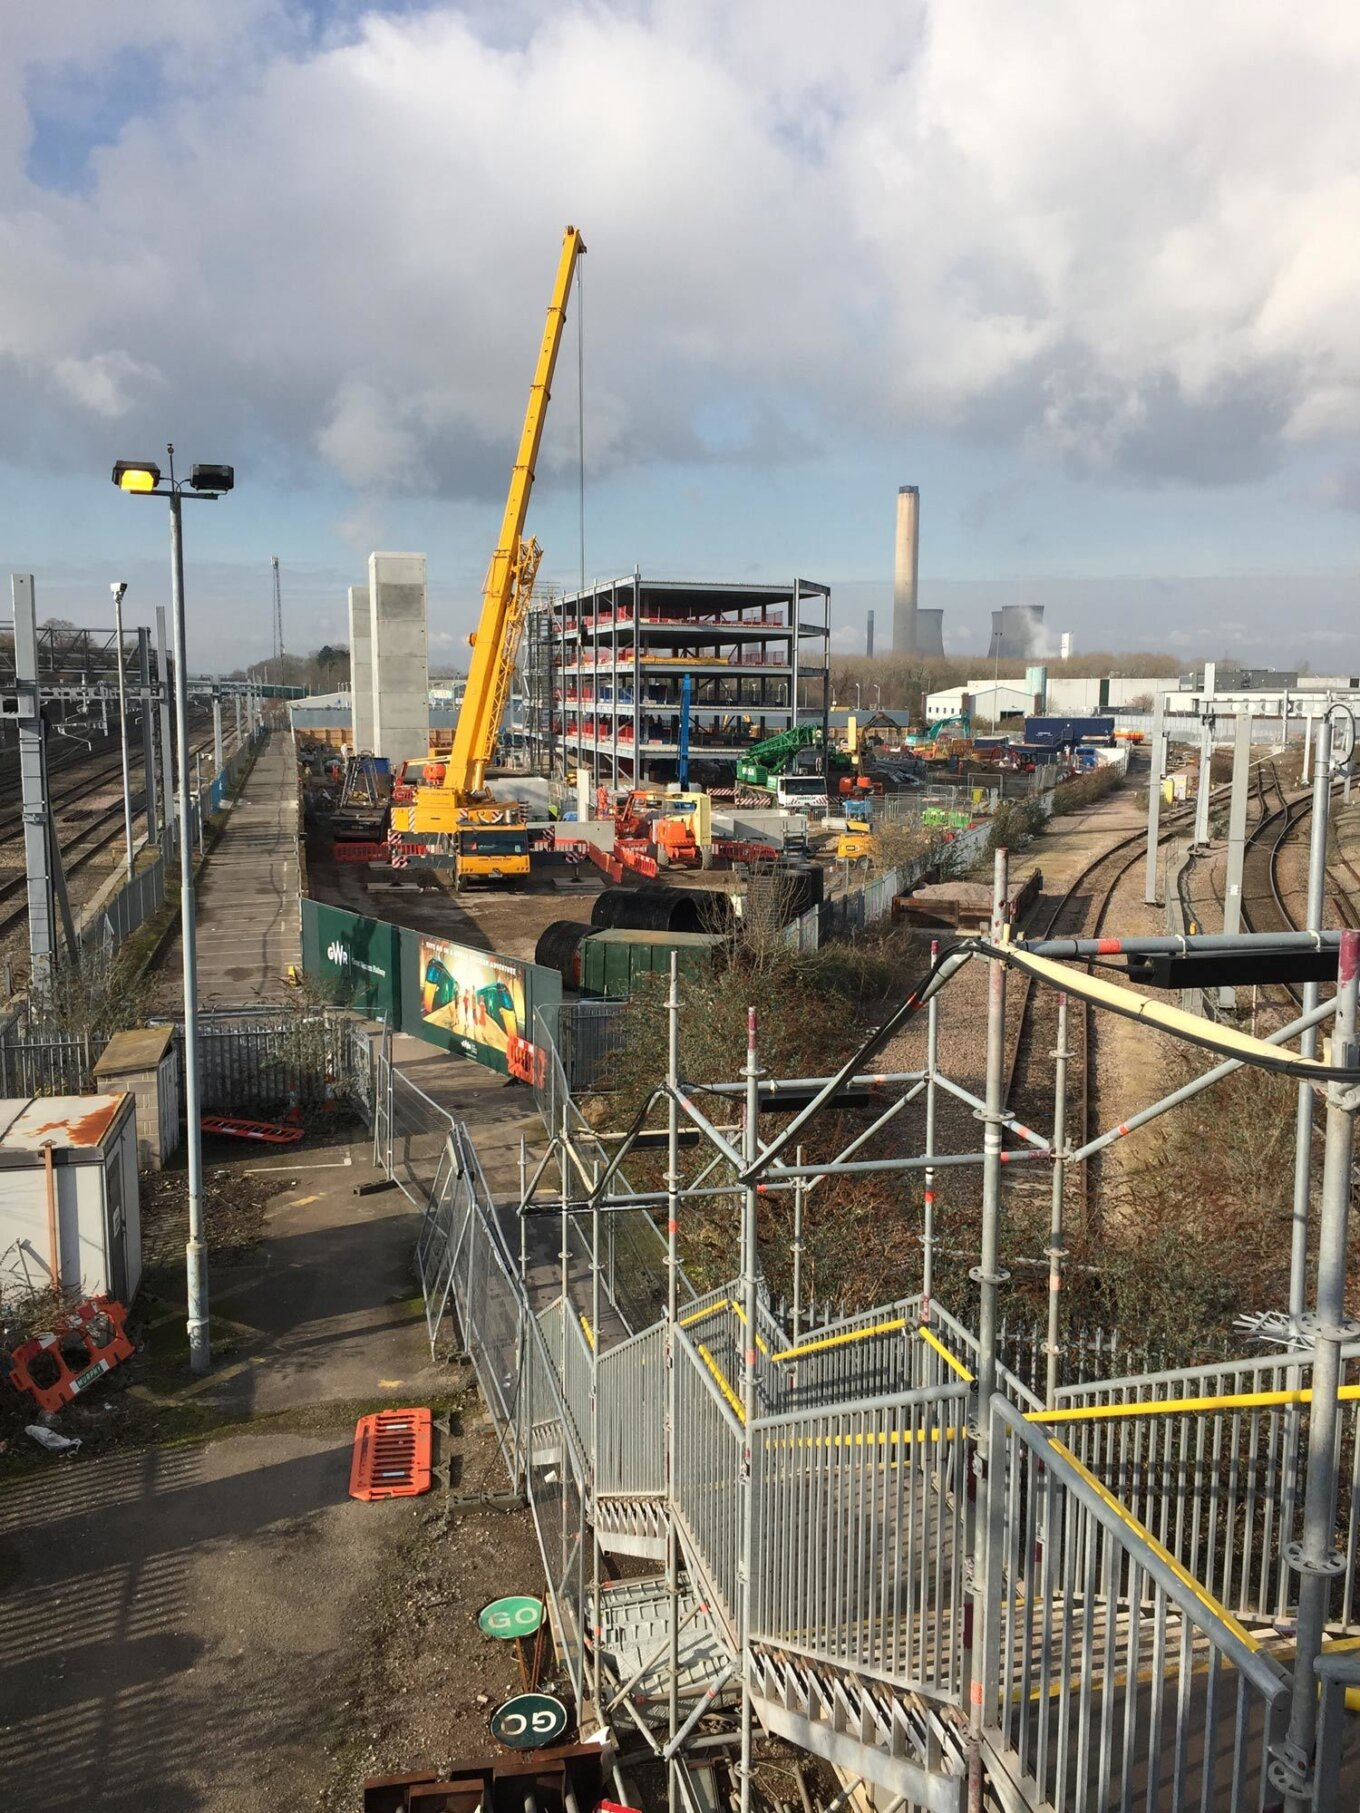 New Multi-Storey for Didcot Station